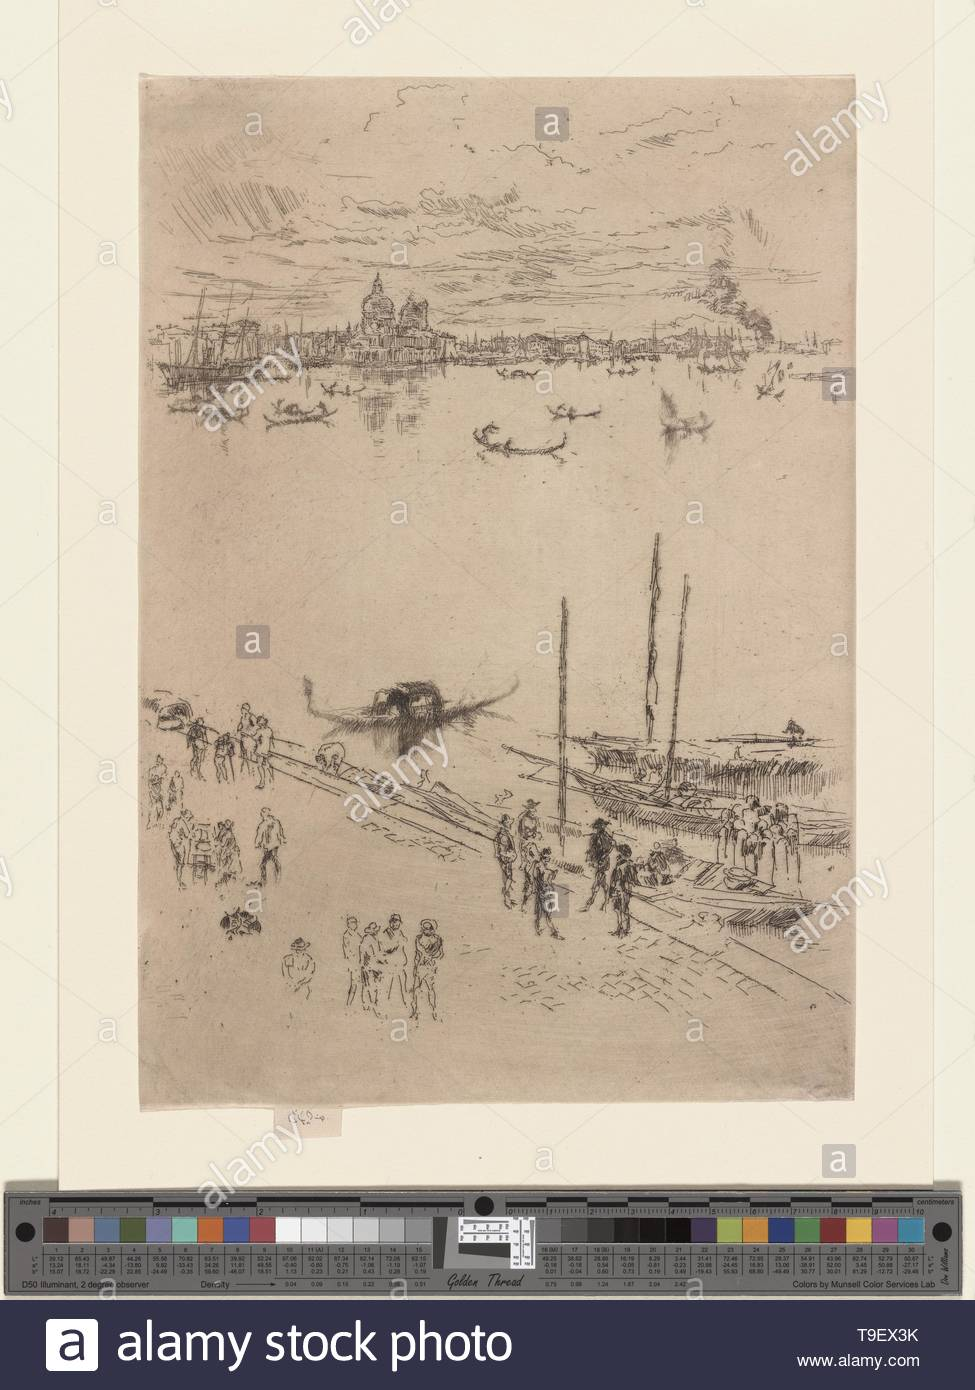 Whistler,JamesMcNeill(1834-1903)-Upright Venice - Stock Image